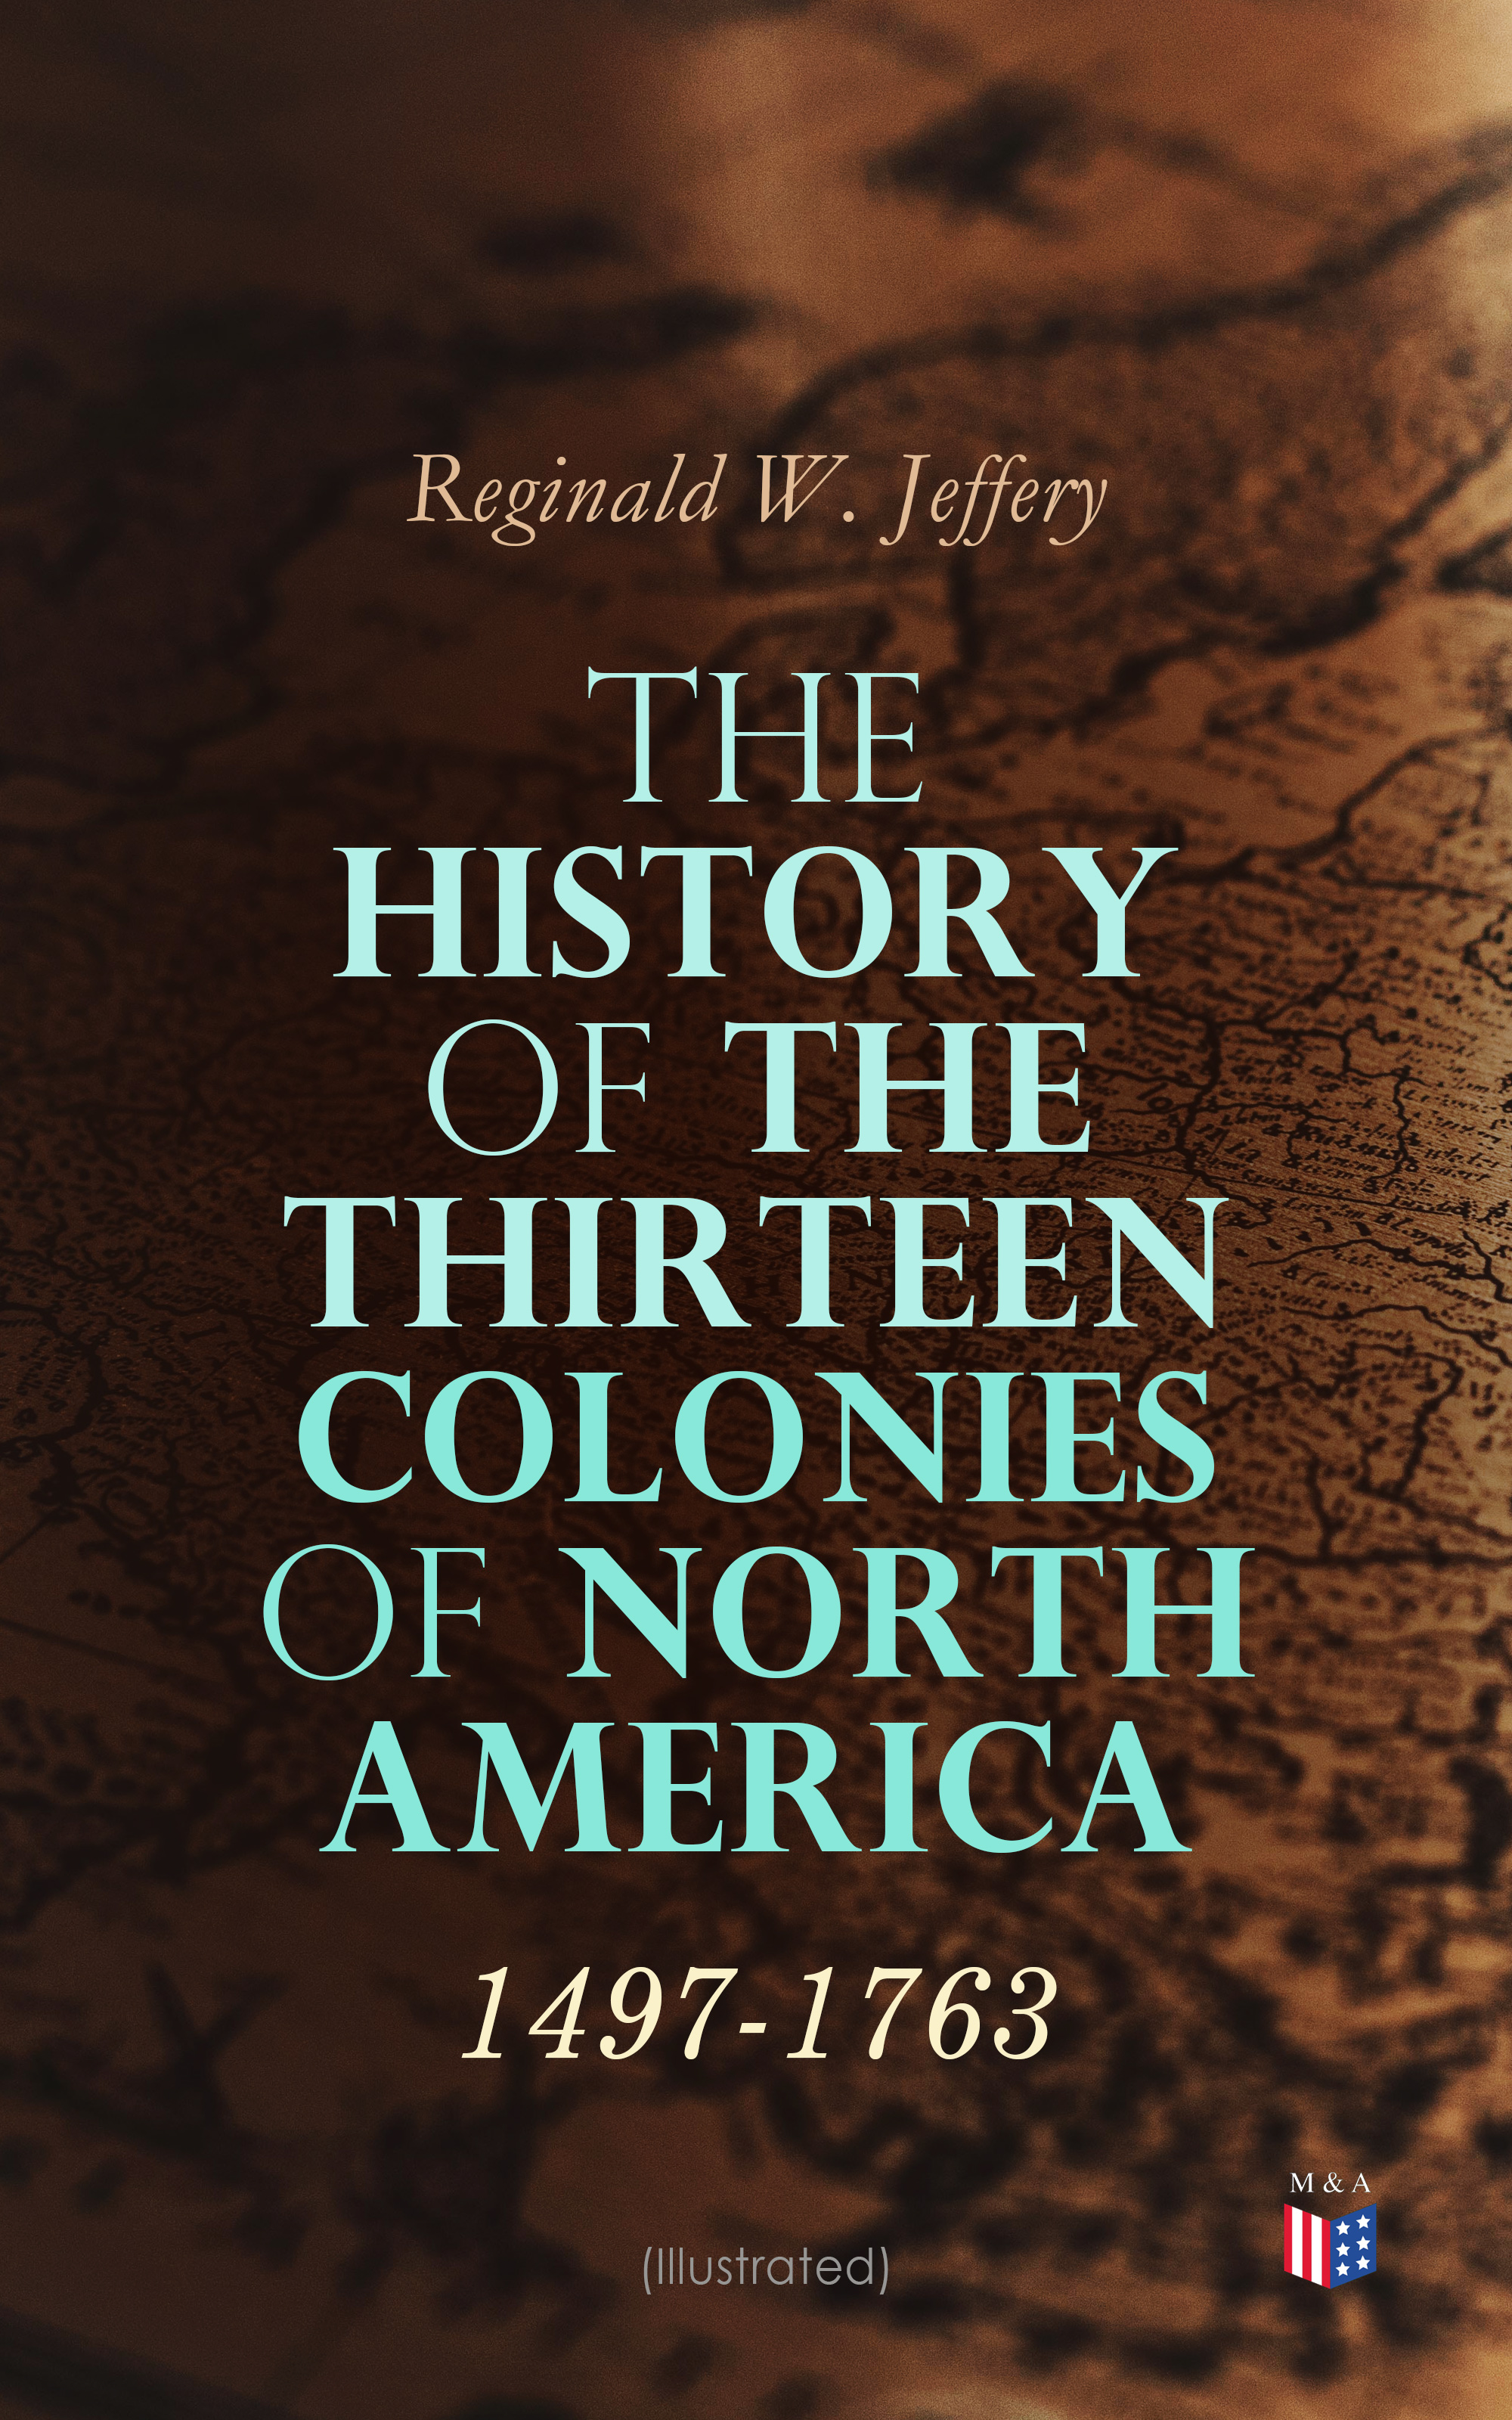 Reginald W. Jeffery The History of the Thirteen Colonies of North America: 1497-1763 (Illustrated) u s department of war the pension roll of 1835 in four volumes volume i the new england states connecticut maine massachusetts new hampshire rhode island vermont